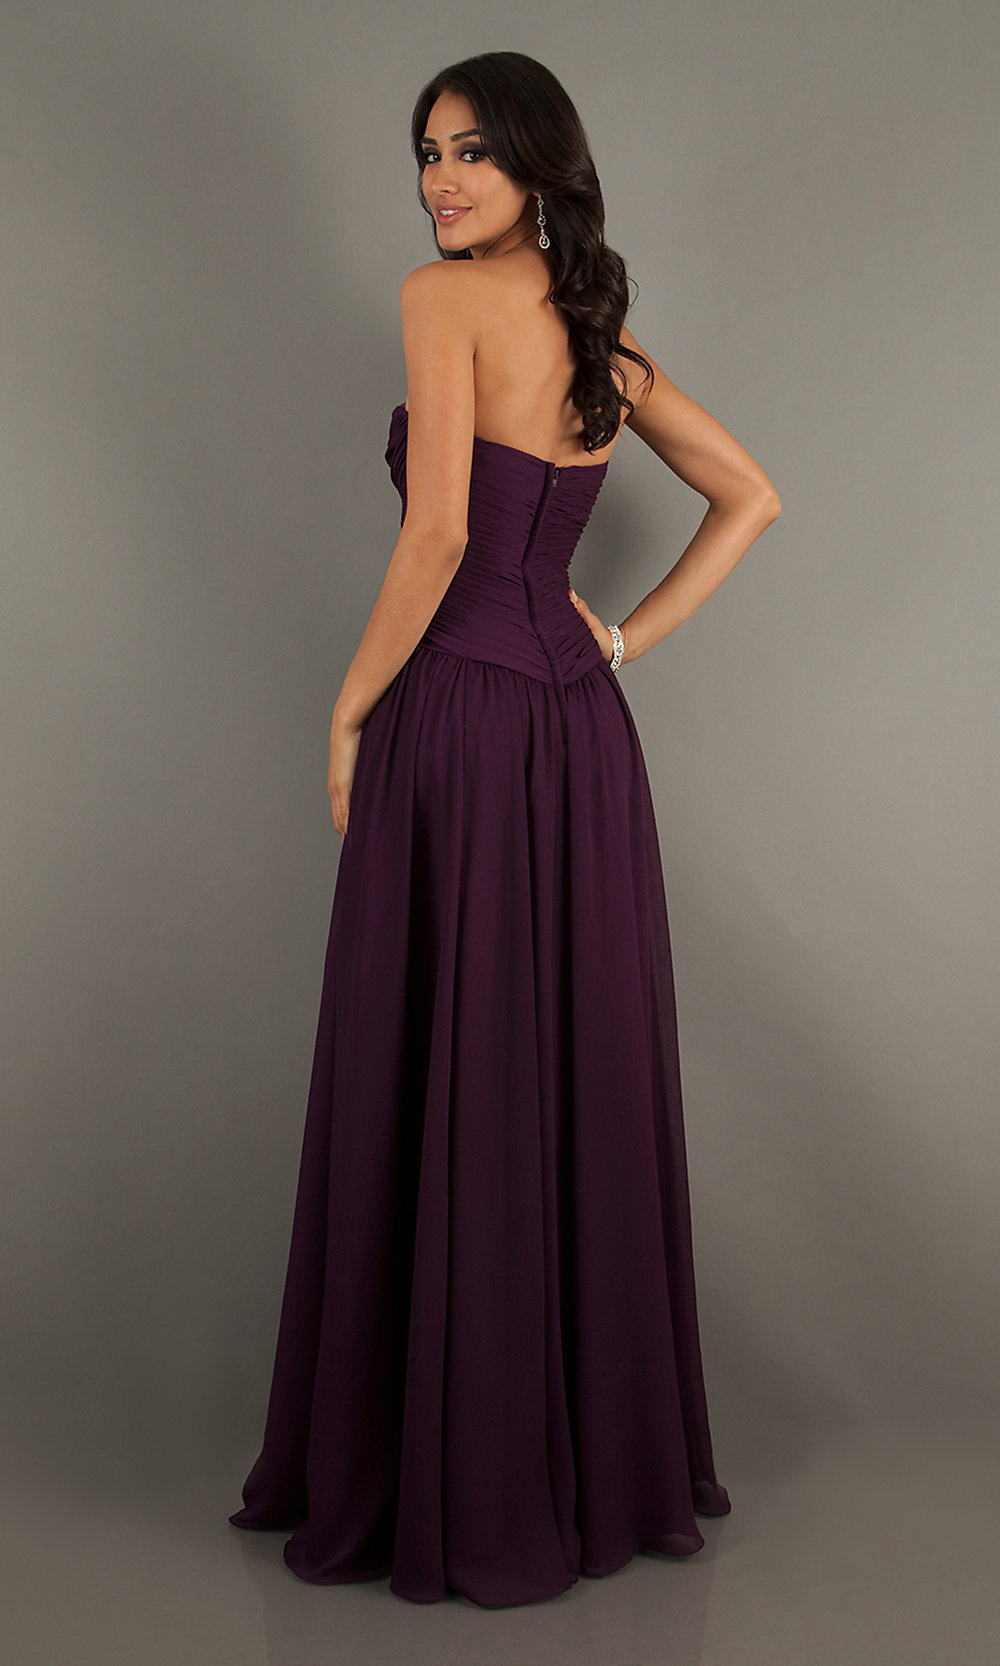 Strapless Sweetheart Gown Long Homecoming Dress Simply